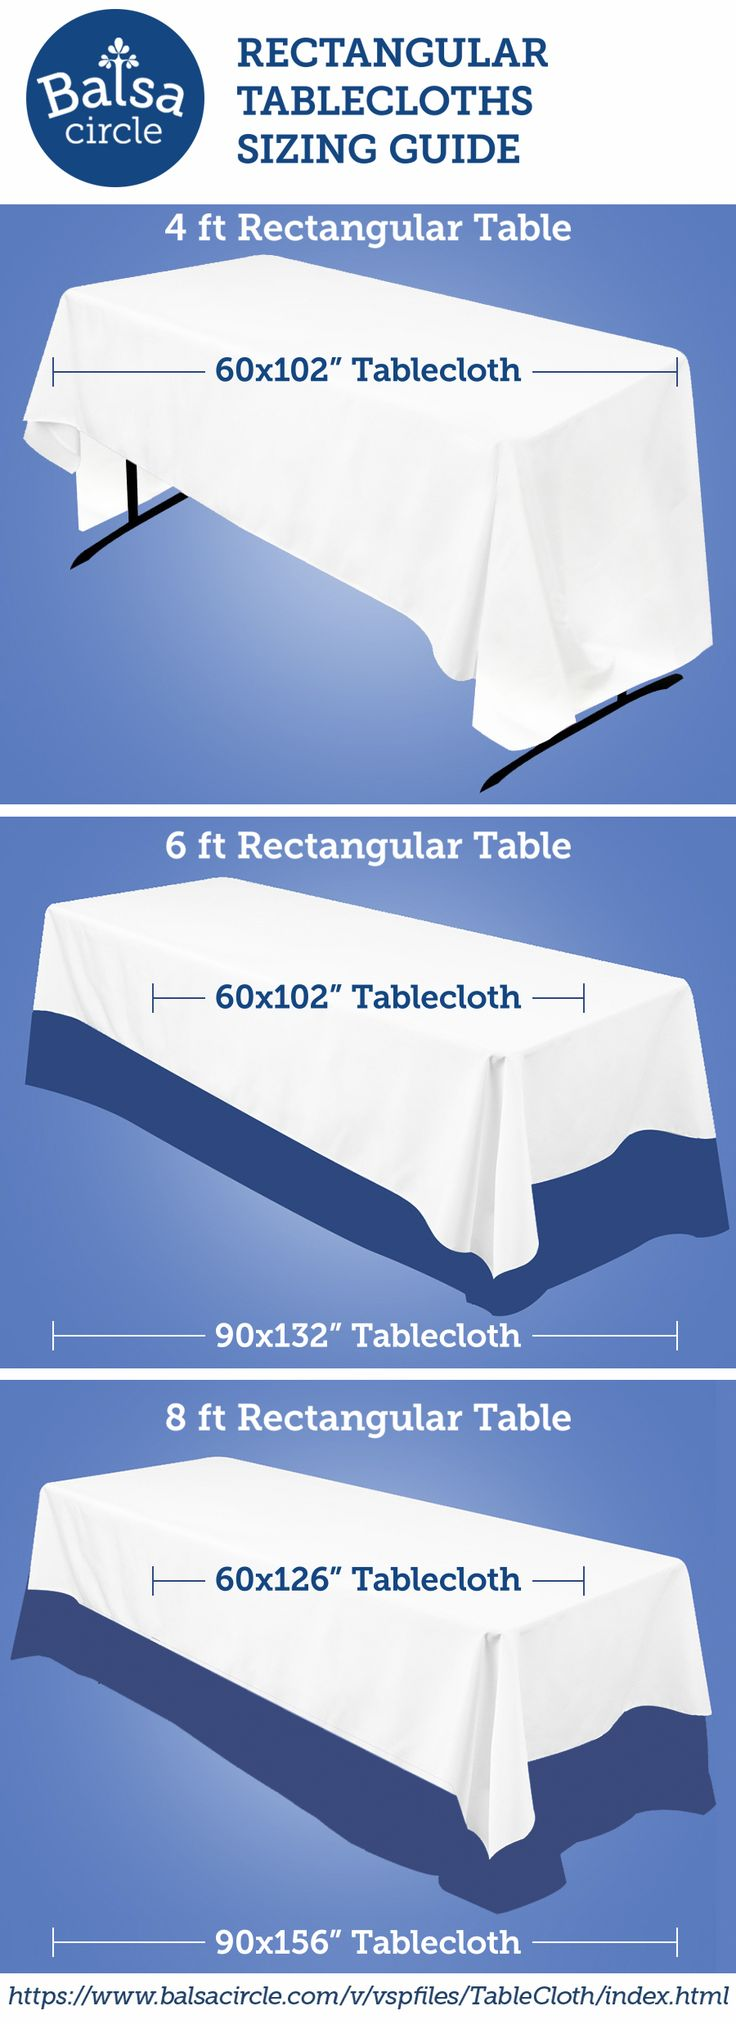 Djj business link agcguru info - Find The Right Tablecloths For Your Banquet Tables Https Www Balsacircle